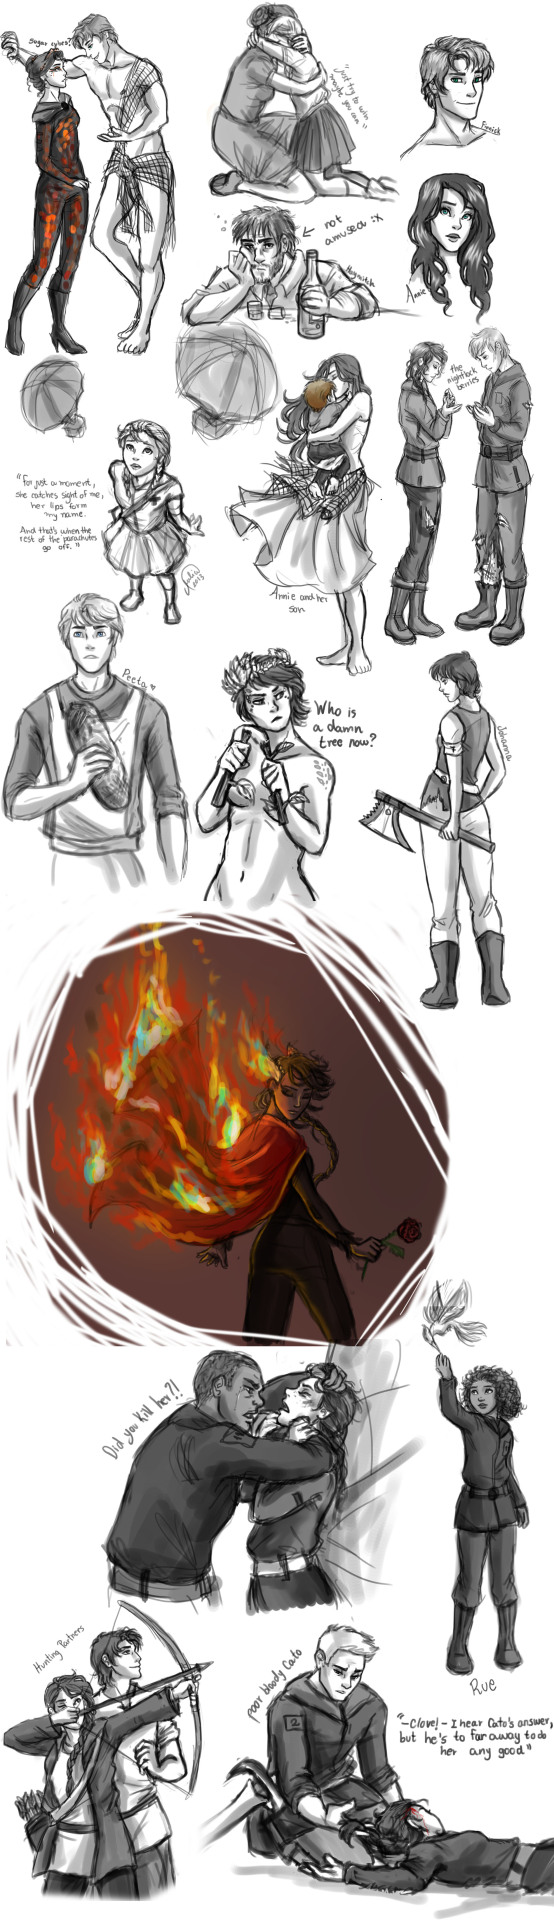 "whiskeysnarker:  The Hunger Games Sketch Dump by ~juliajm15 These are all great, but I particularly love the Scruffy Unamused (and he's Seam dark, THANK YOU!) Haymitch, the ""Fuck Your Tree Costume"" Johanna, and the Johanna+Axe BFFs ones.  :D   Great art, and they look a lot like Haymitch and Johanna in my mind."